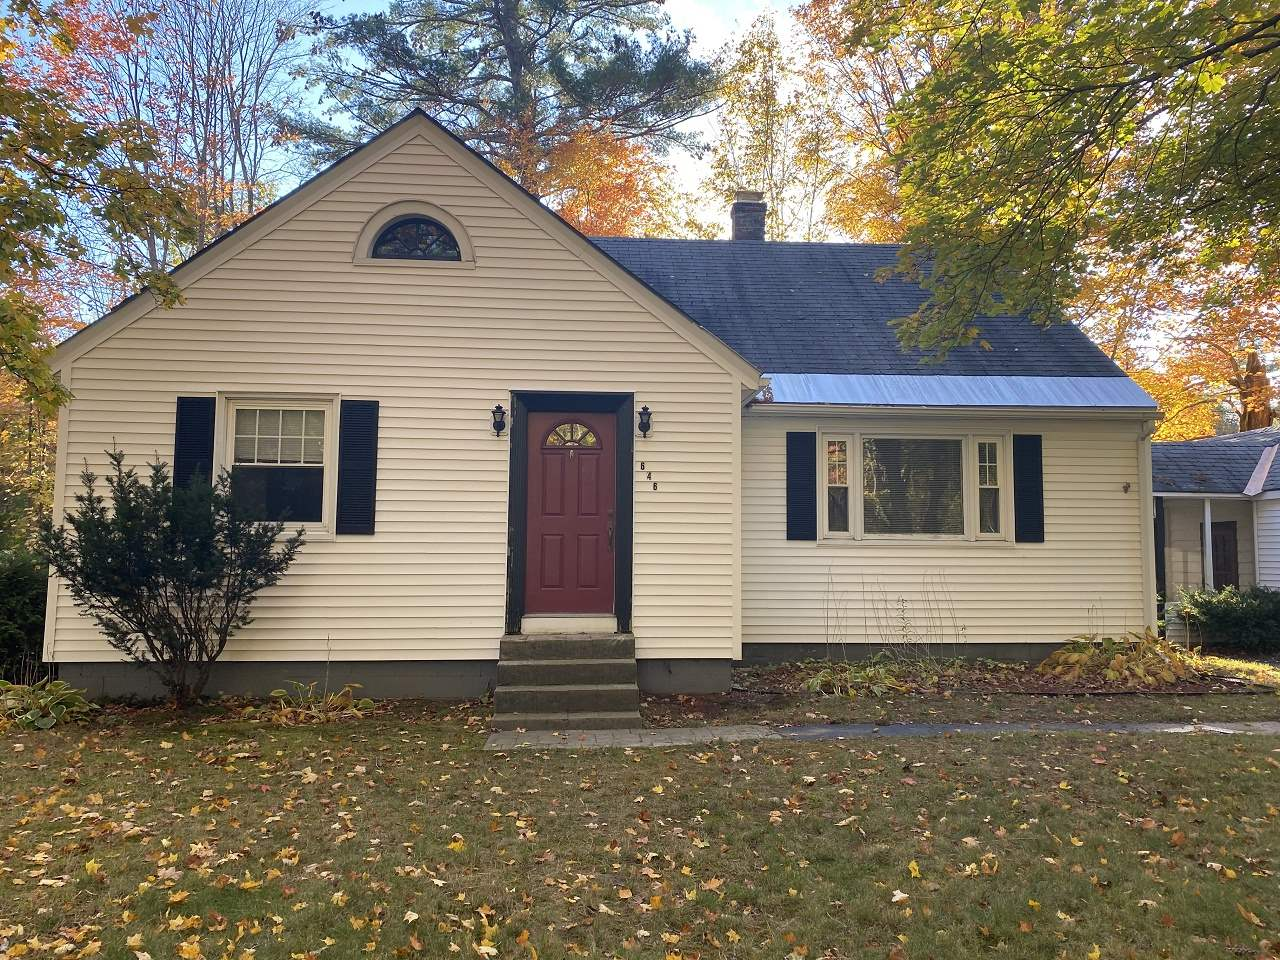 MLS 4825131: 646 Court Street, Keene NH